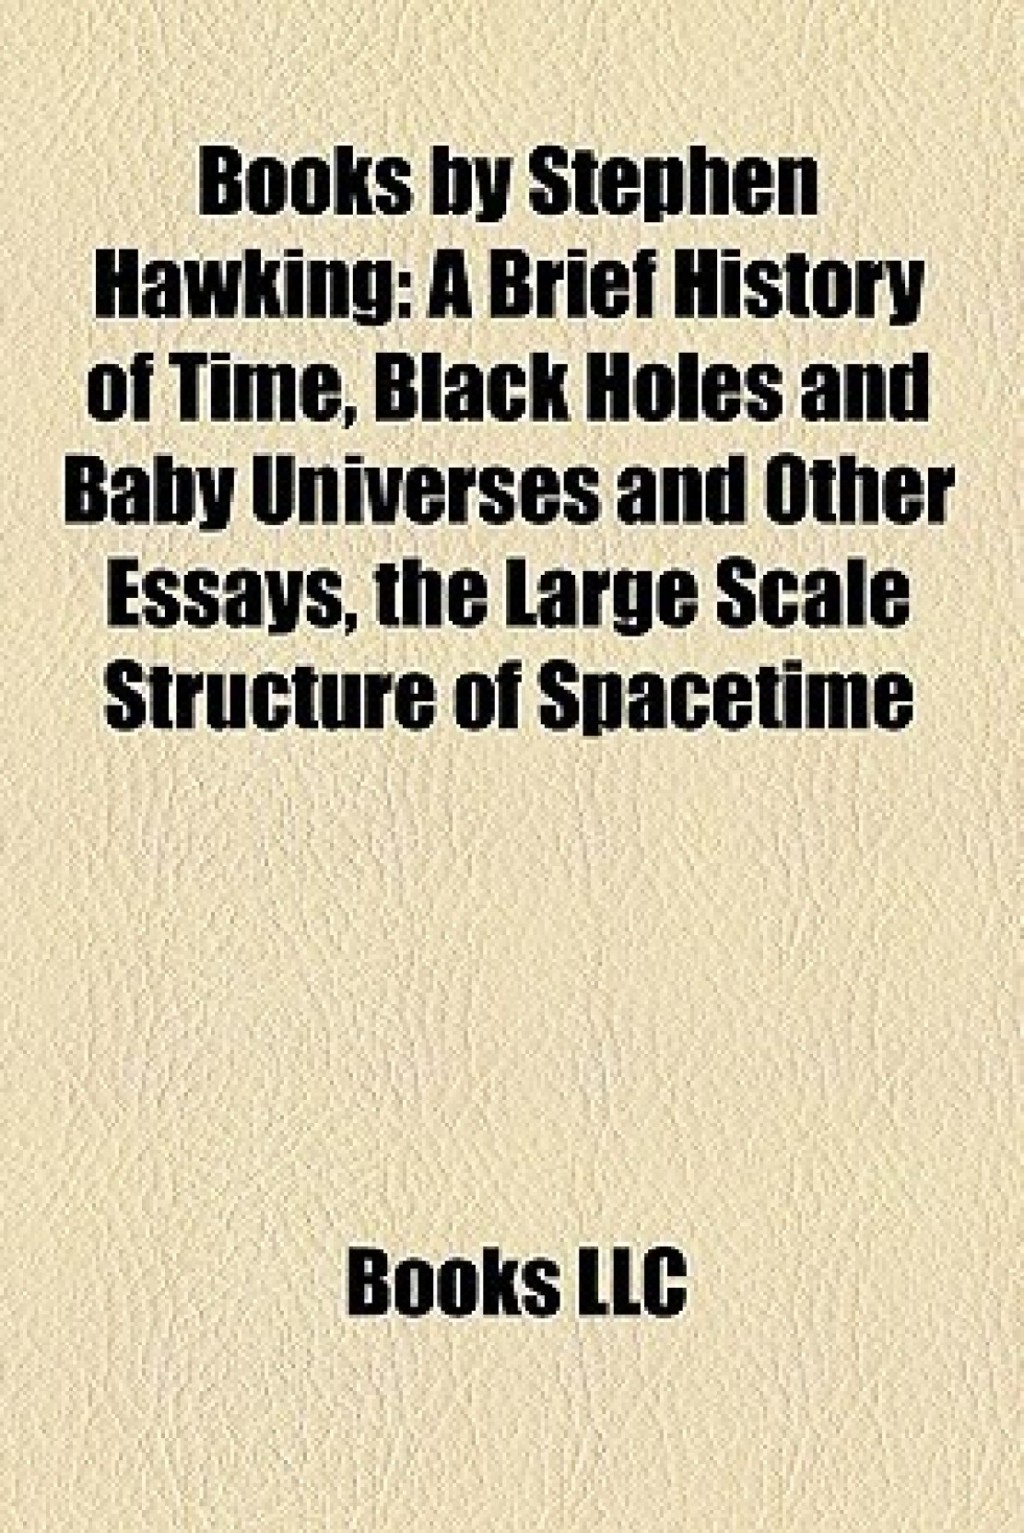 021 Books By Stephen Hawking Study Guide Brief History Of Time Original Imaearv4shvqmzh7q90 Black Holes And Baby Universes Other Essays Essay Unique Review Ebook Free Download Amazon Large